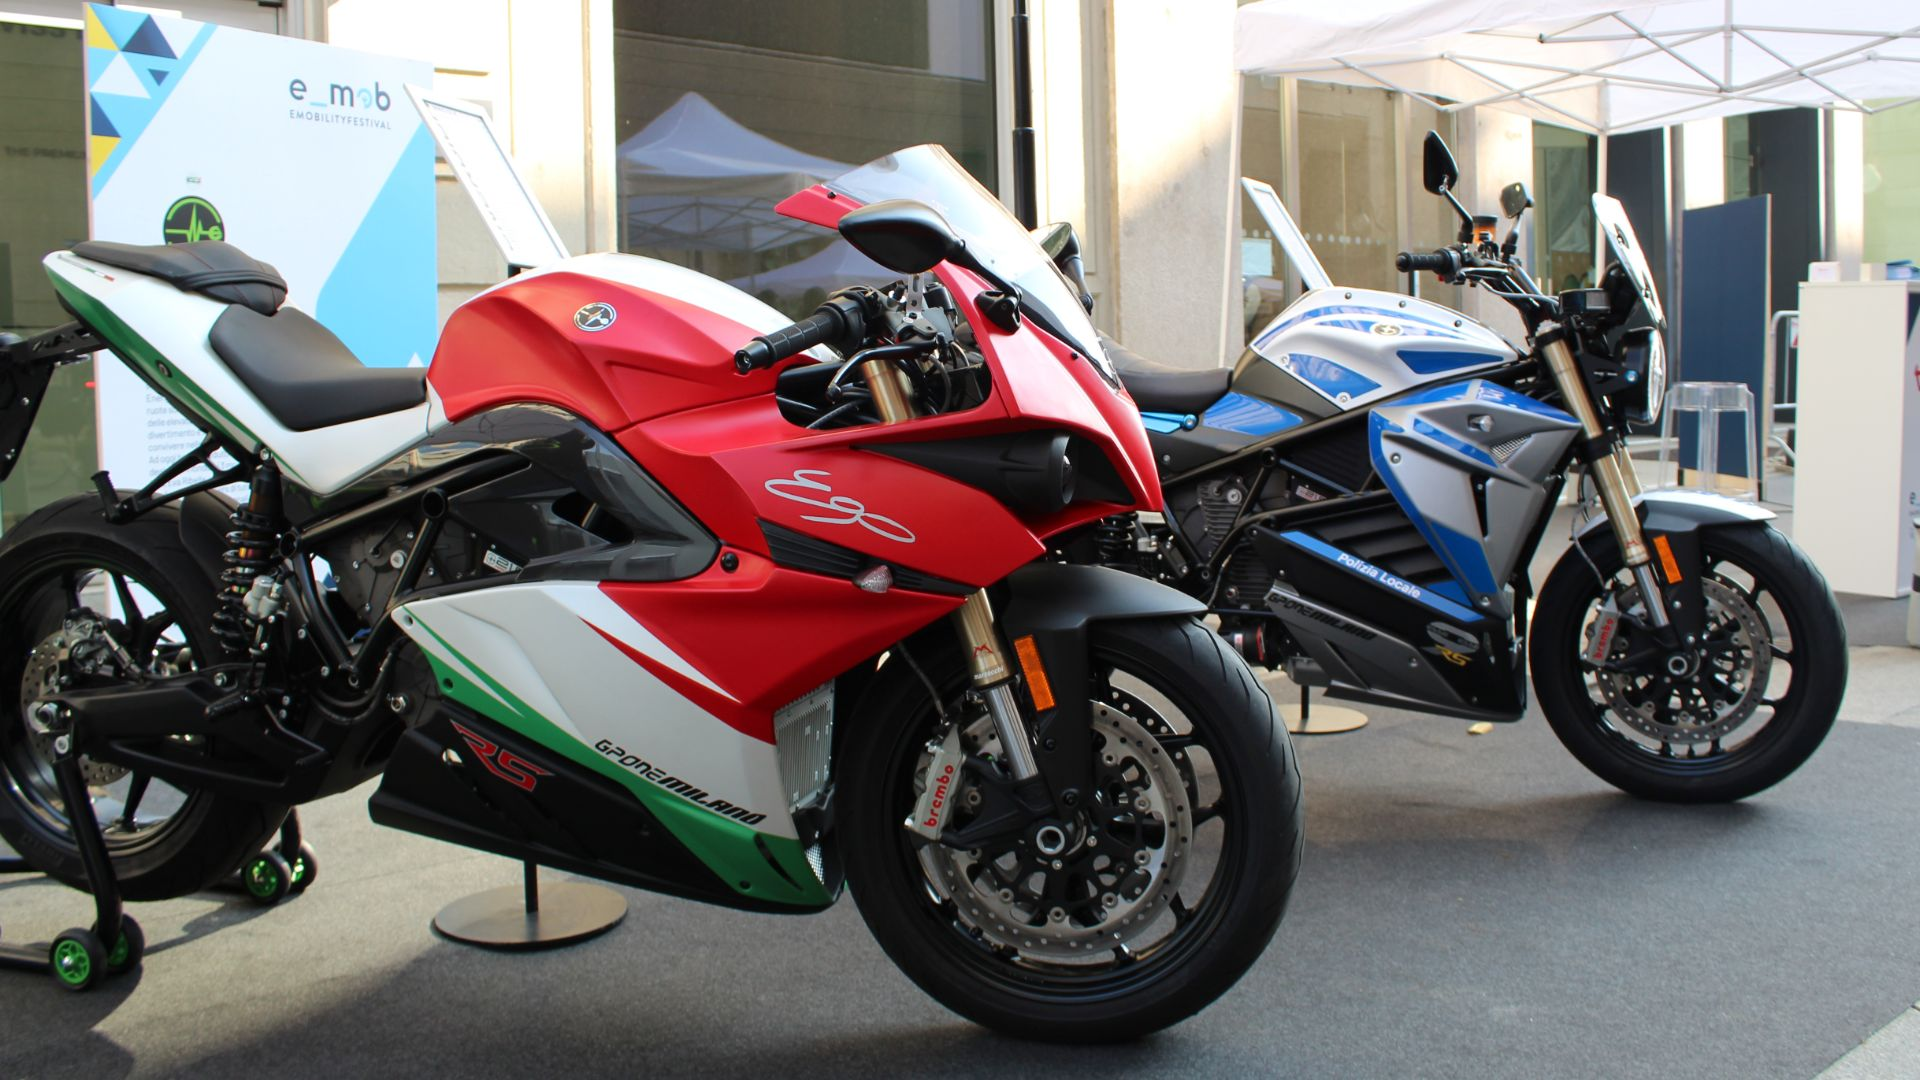 Energica attends the E_Mob Festival 2021 with some interesting news.